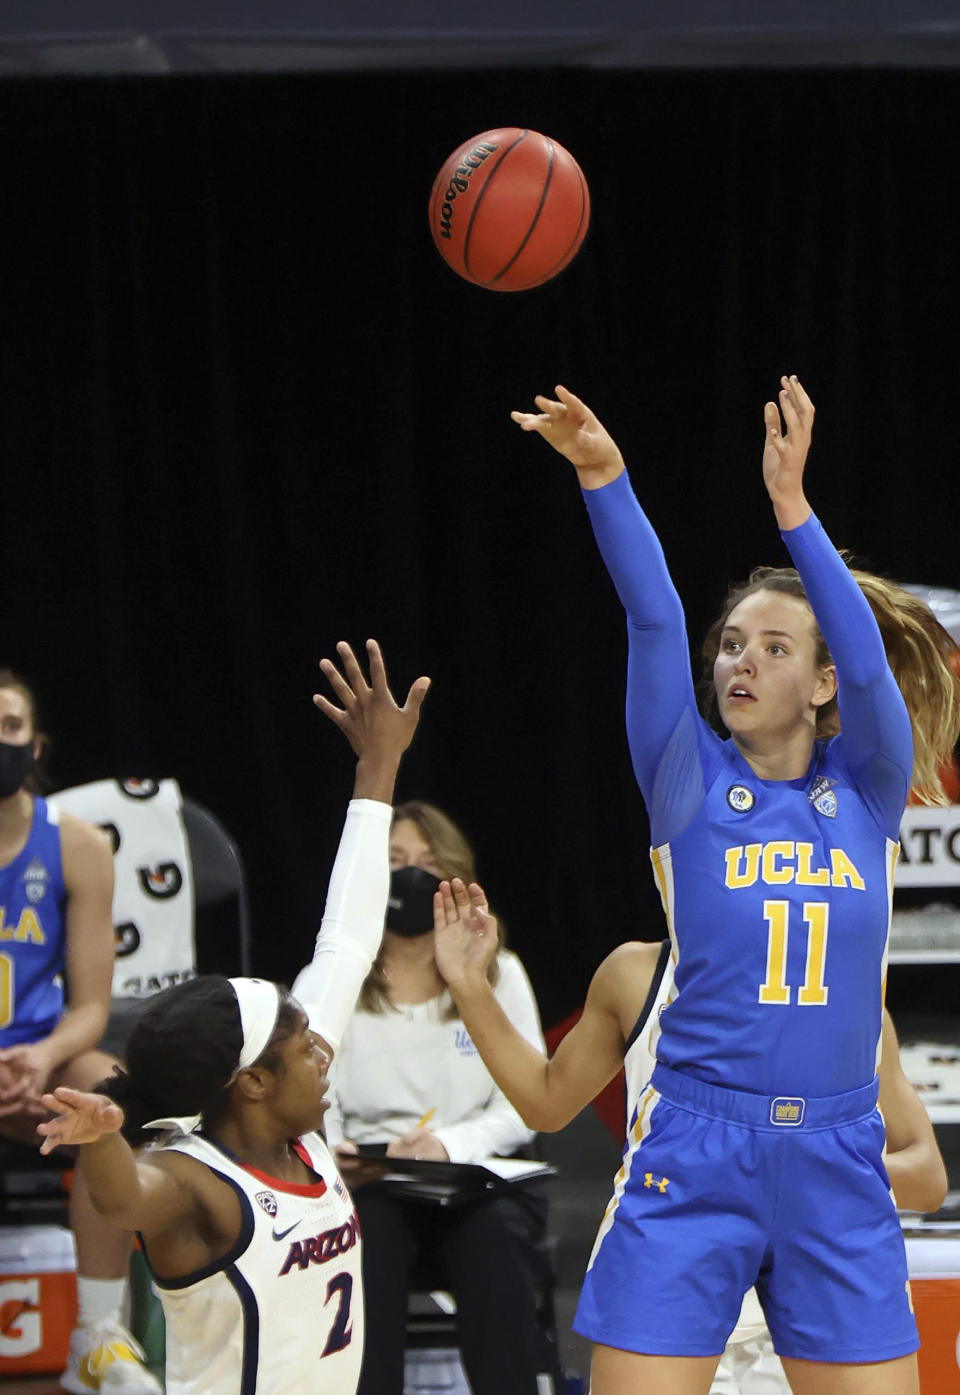 UCLA forward Emily Bessoir (11) shoots as Arizona guard Aari McDonald (2) defends during the second half of an NCAA college basketball game in the semifinals of the Pac-12 women's tournament Friday, March 5, 2021, in Las Vegas. (AP Photo/Isaac Brekken)